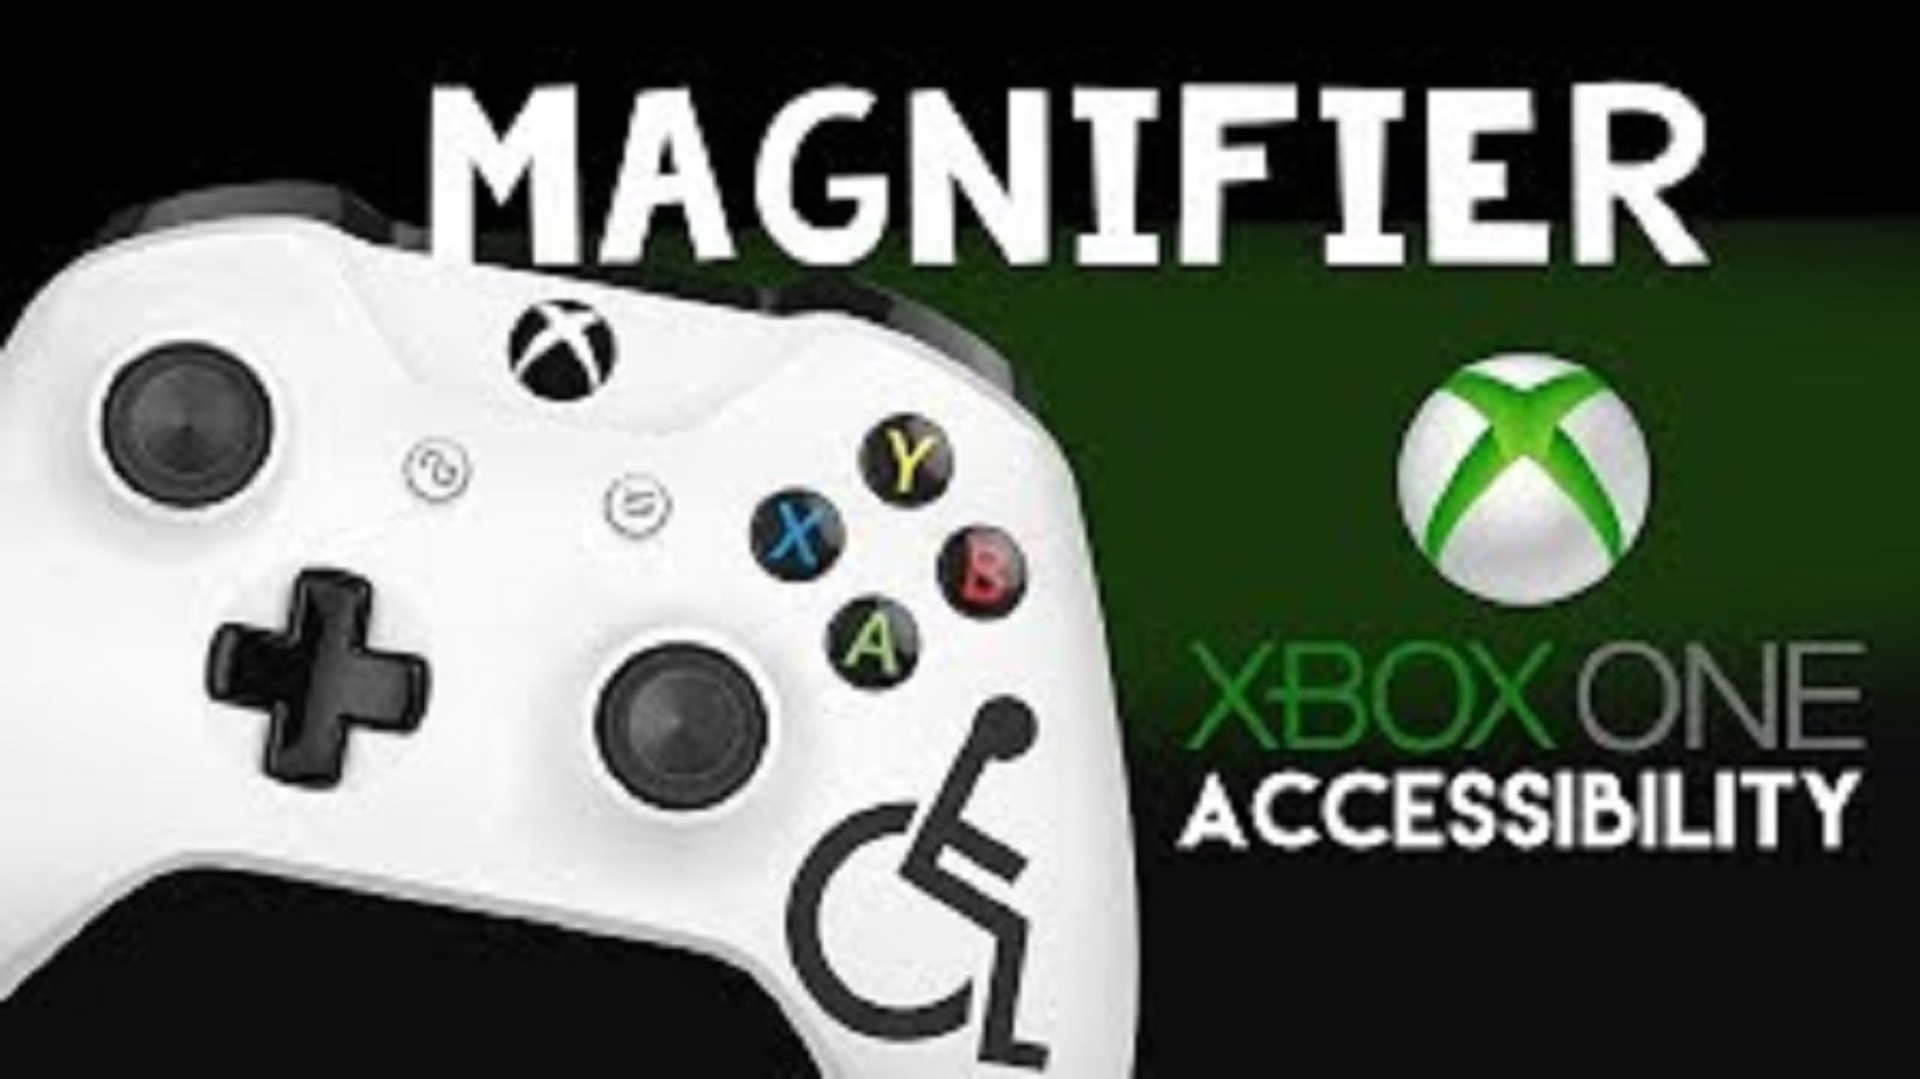 Magnifier XBox ONE Accessibility